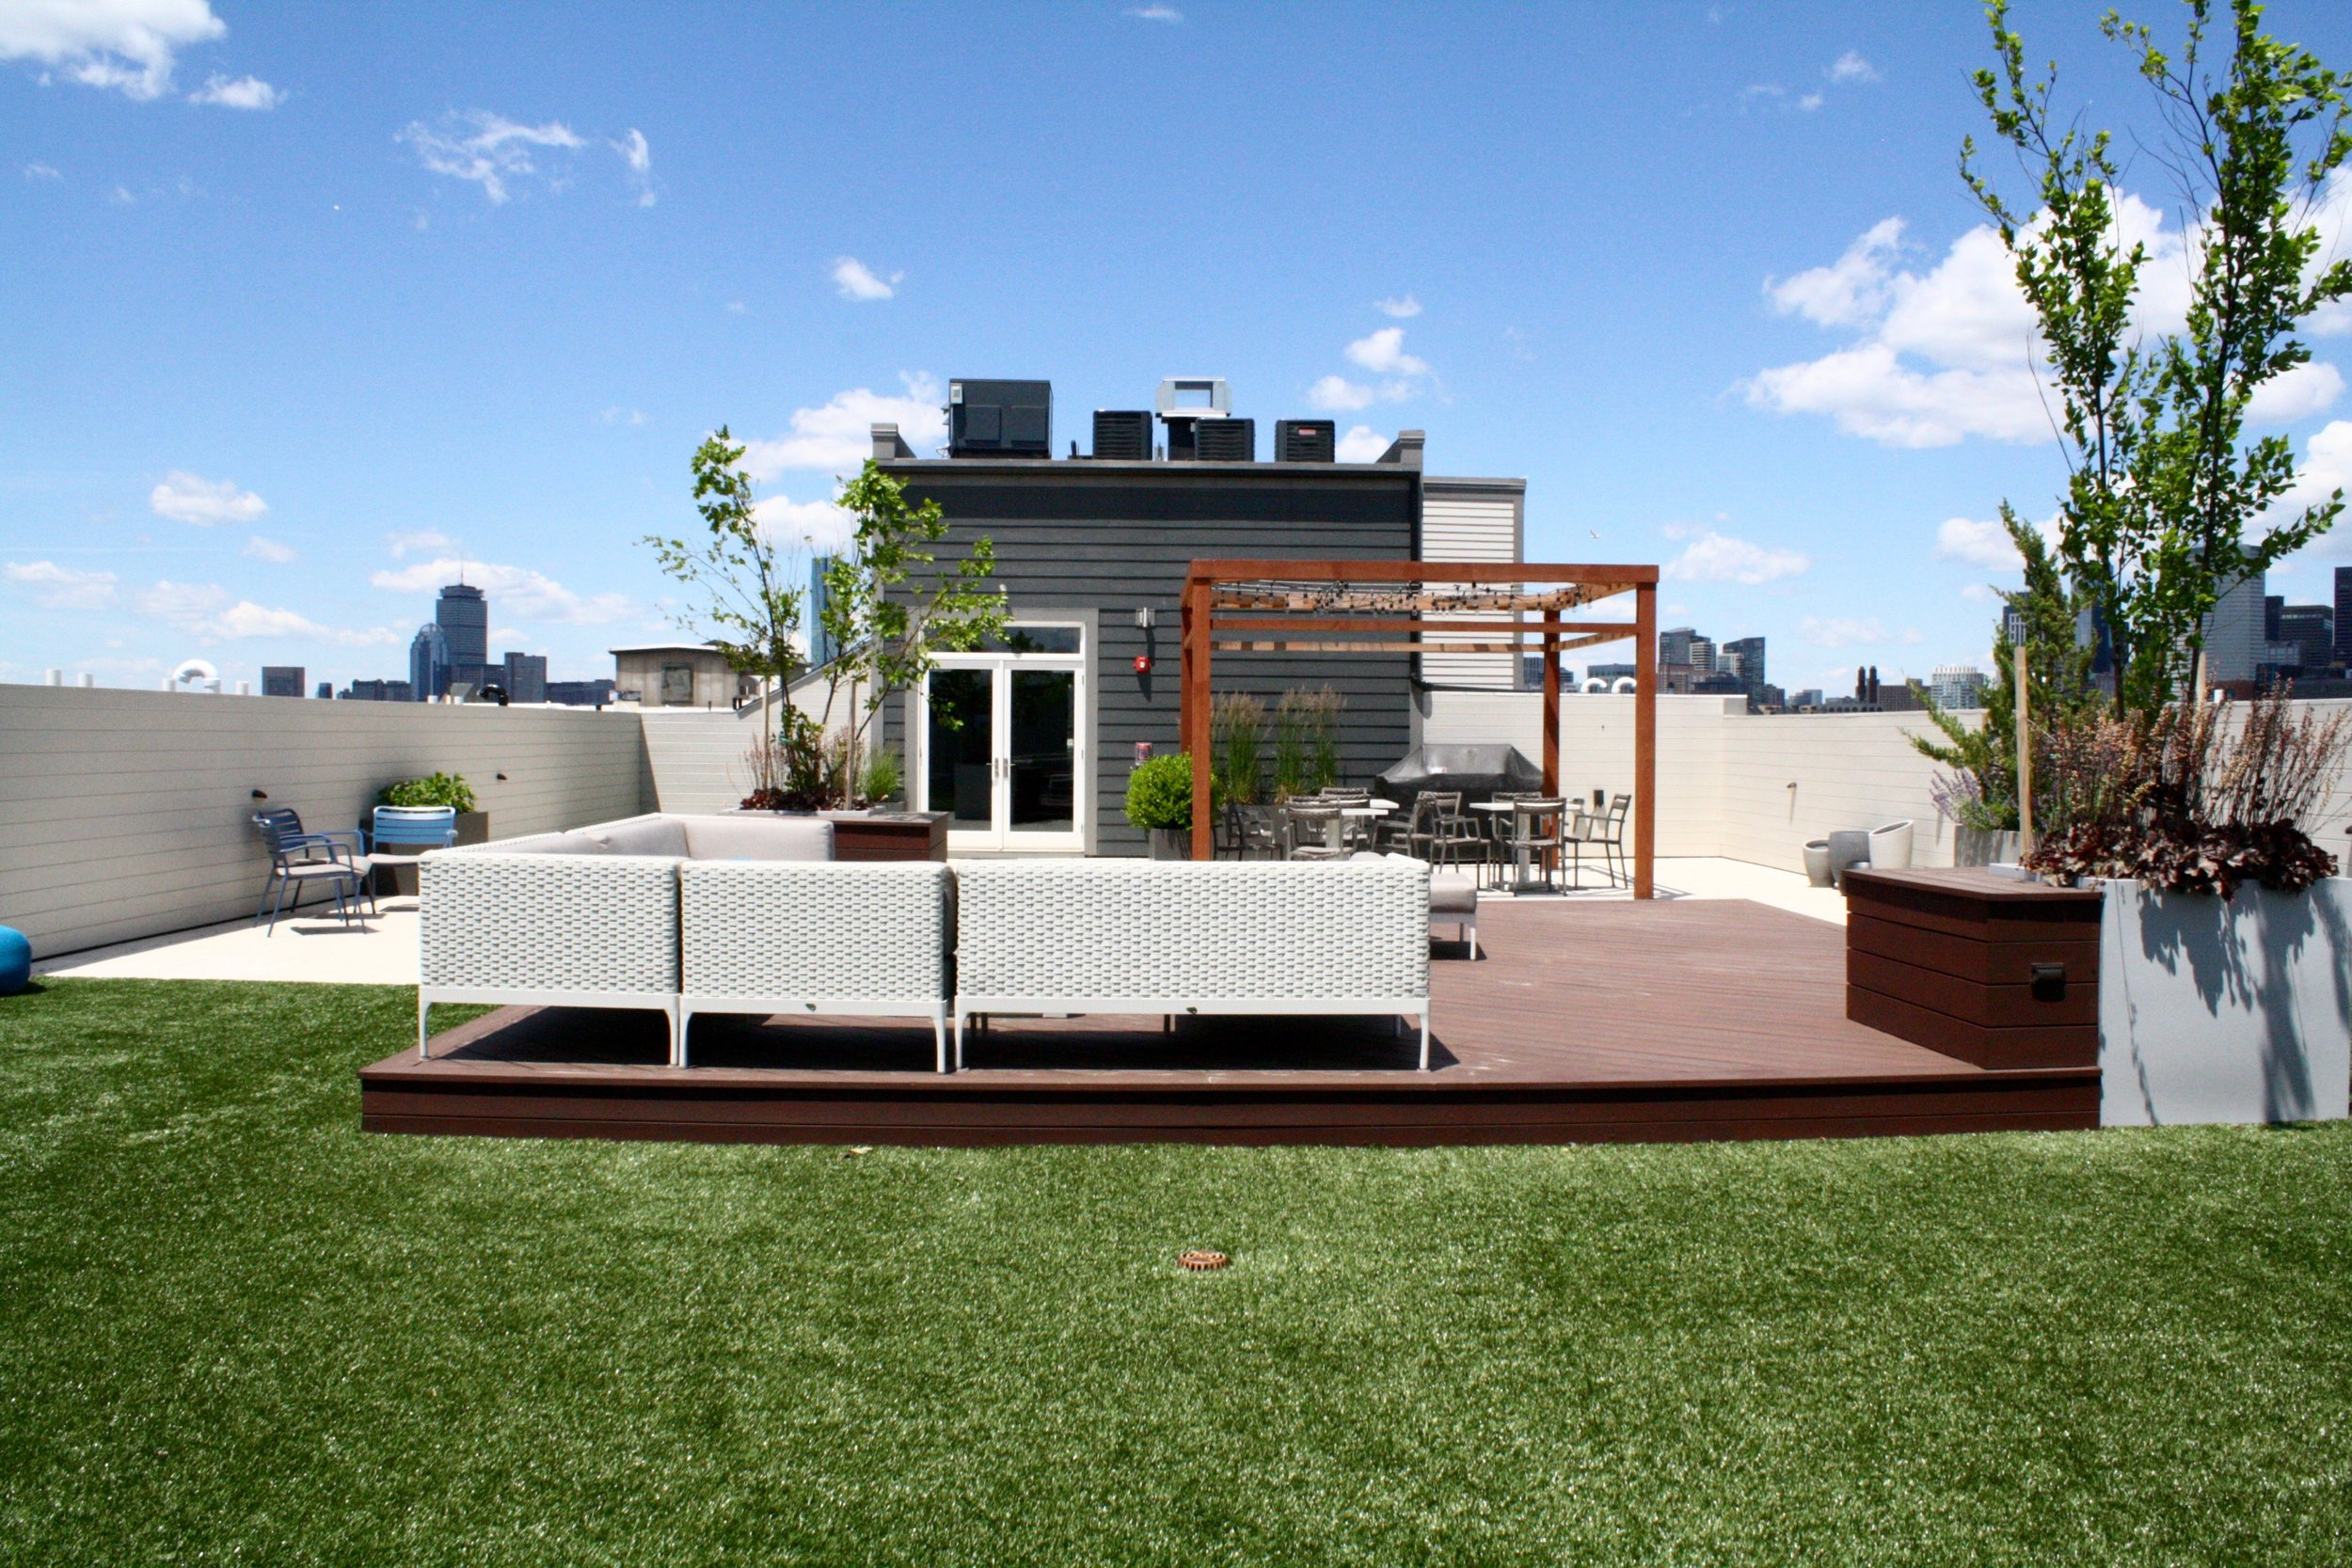 recover-green-roofs-rooftop-patio-east-boston-2015-9.jpg